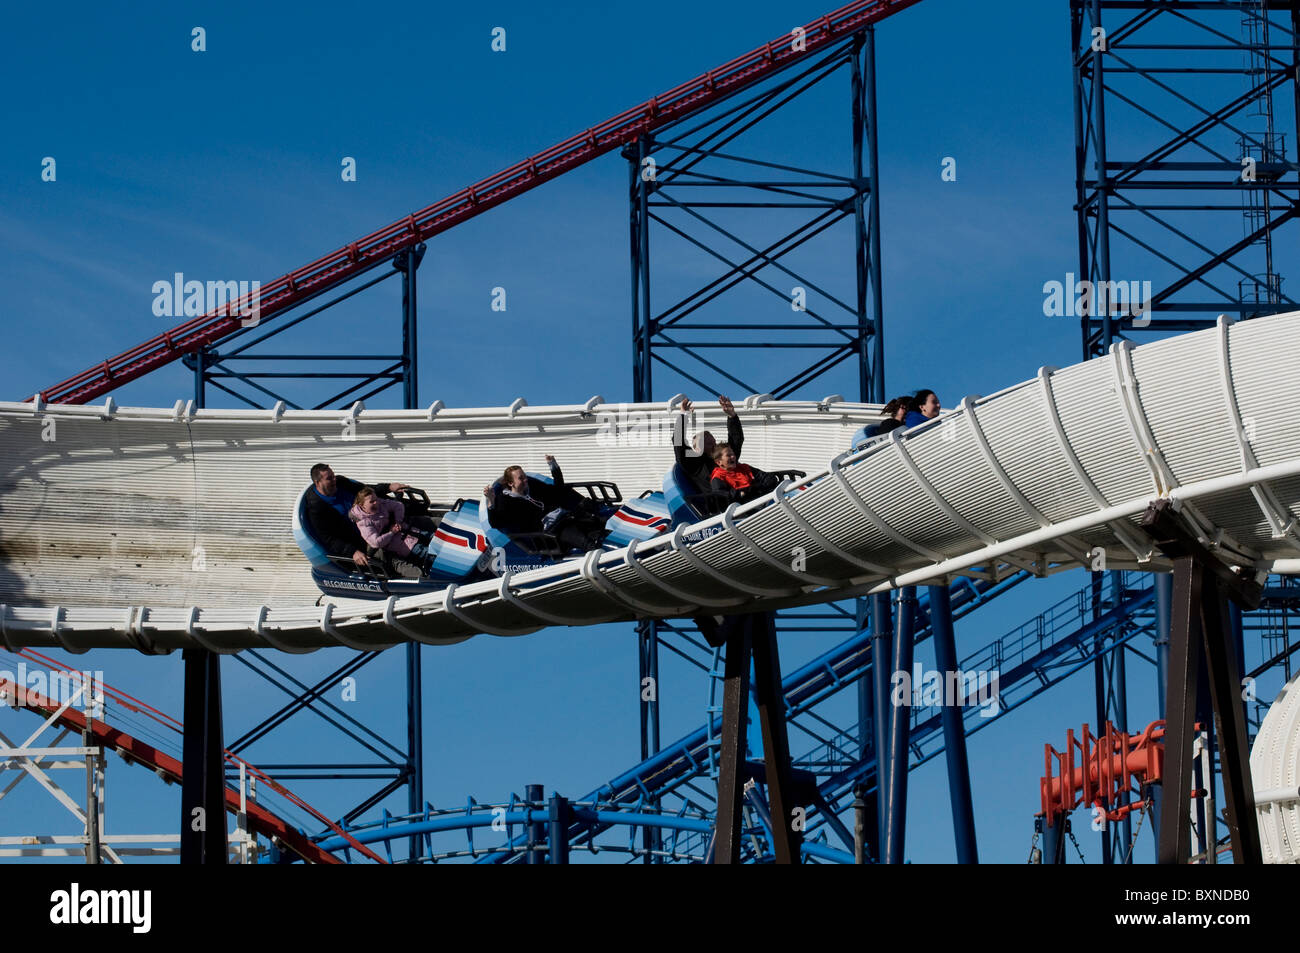 The Avalanche And Pepsi Max Big One Roller Coasters At Blackpool Pleasure Beach Fairground England